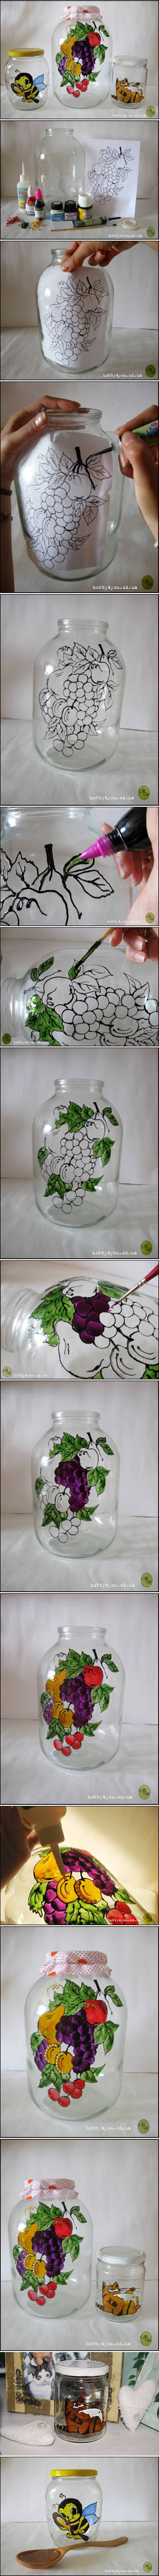 How to do beautiful glass Jar Painting step by step DIY tutorial instructions